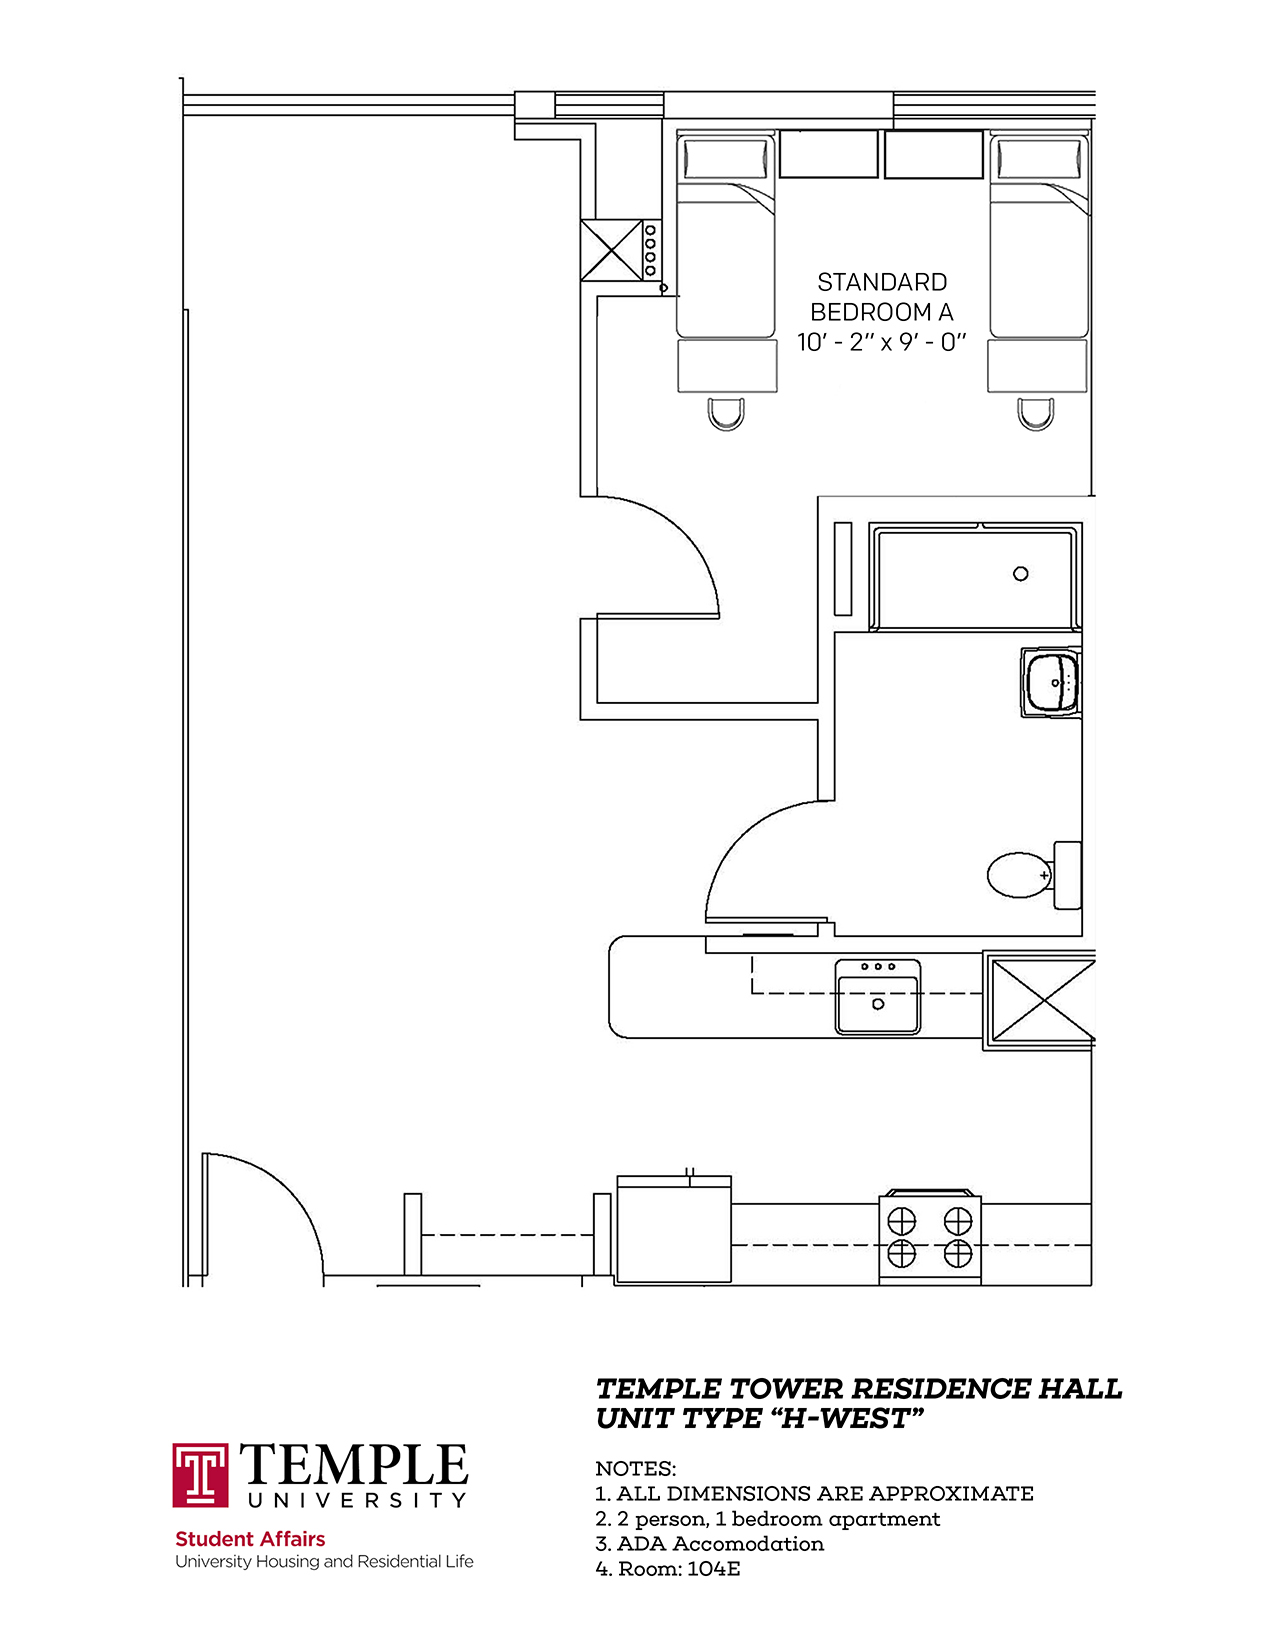 Temple Towers: Unit H West - 2 person, 1 bedroom Apartment